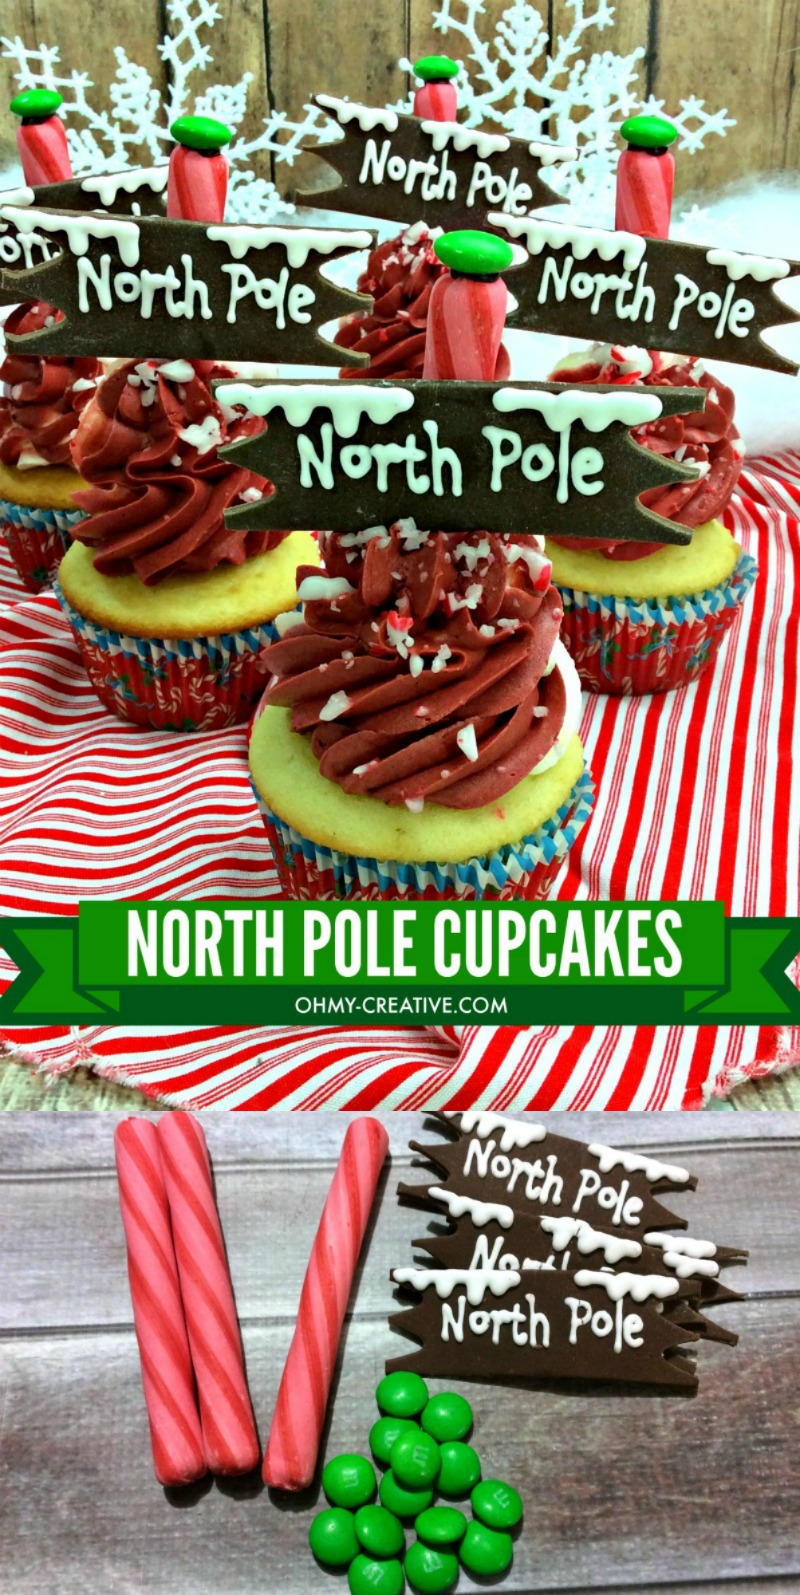 North Pole Dessert Christmas Cupcakes | OHMY-CREATIVE.COM | North Pole Cupcakes | North Pole Sign | Christmas Cupcakes | Christmas Cupcake Ideas | Christmas Themed Cupcakes